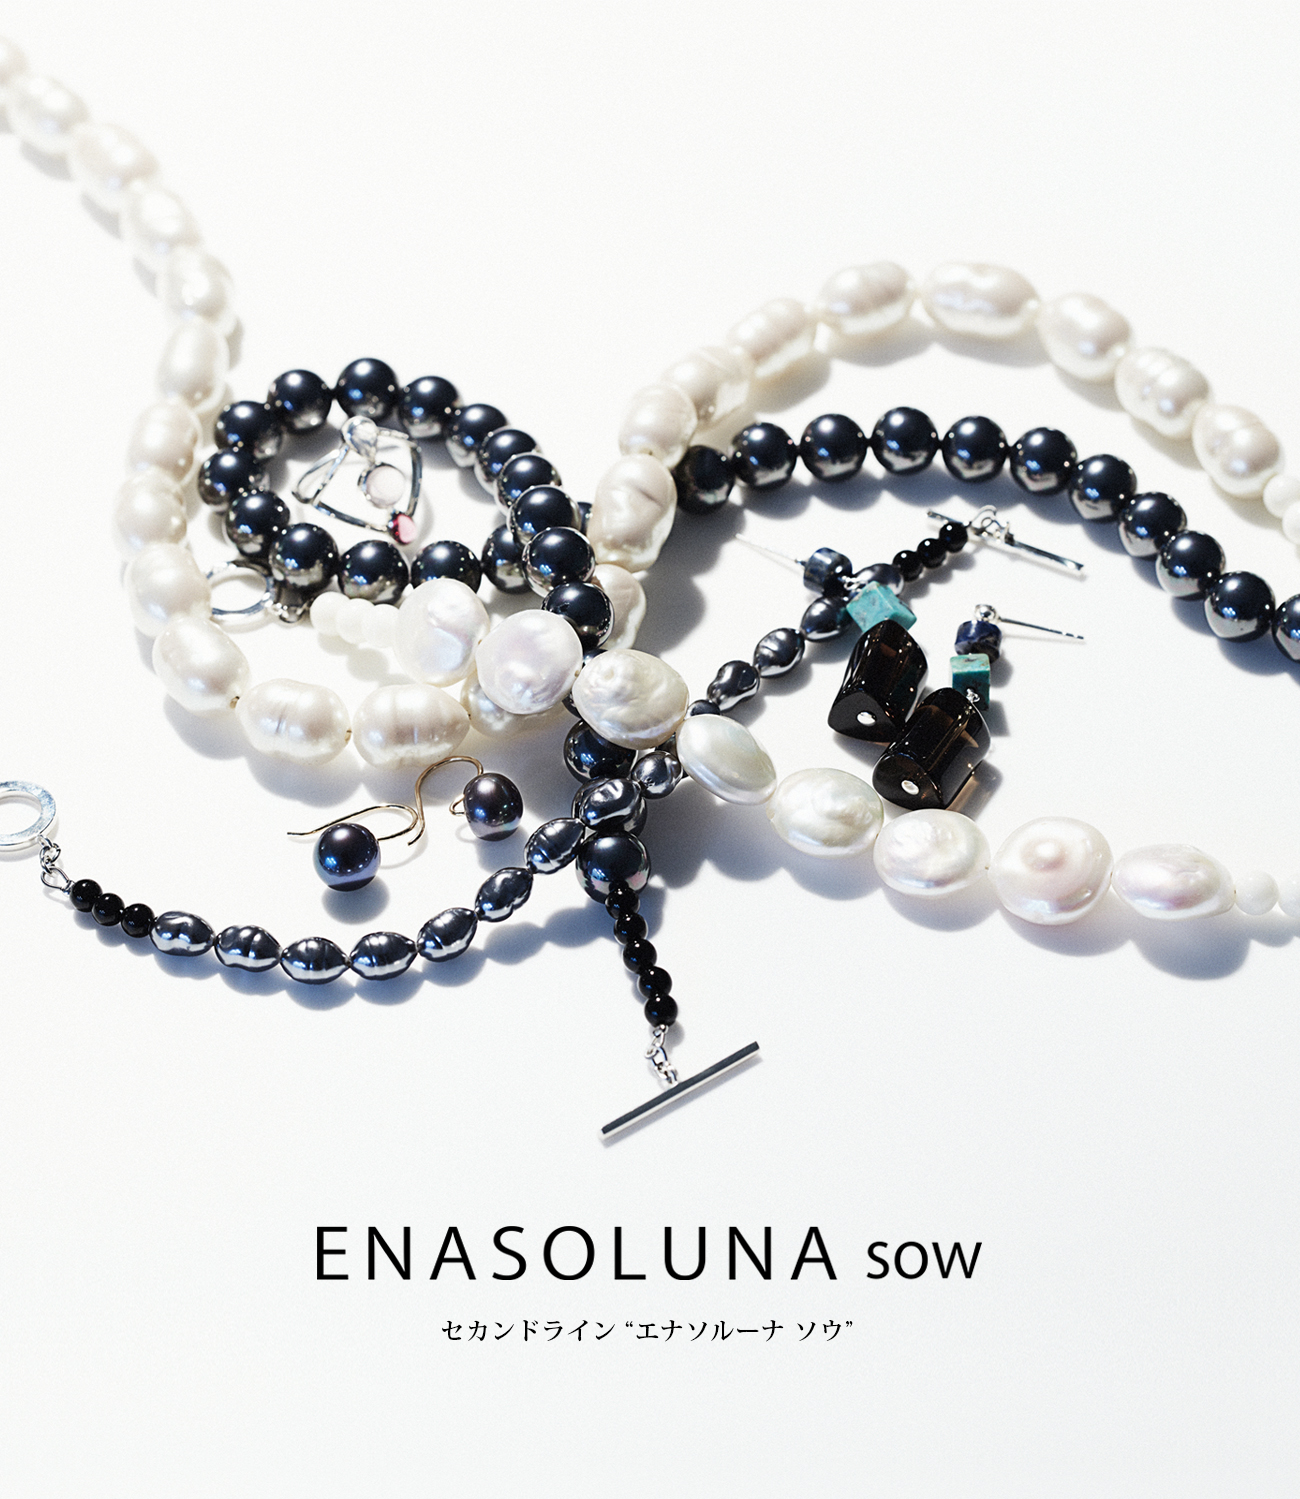 ENASOLUNA sow Spring collection